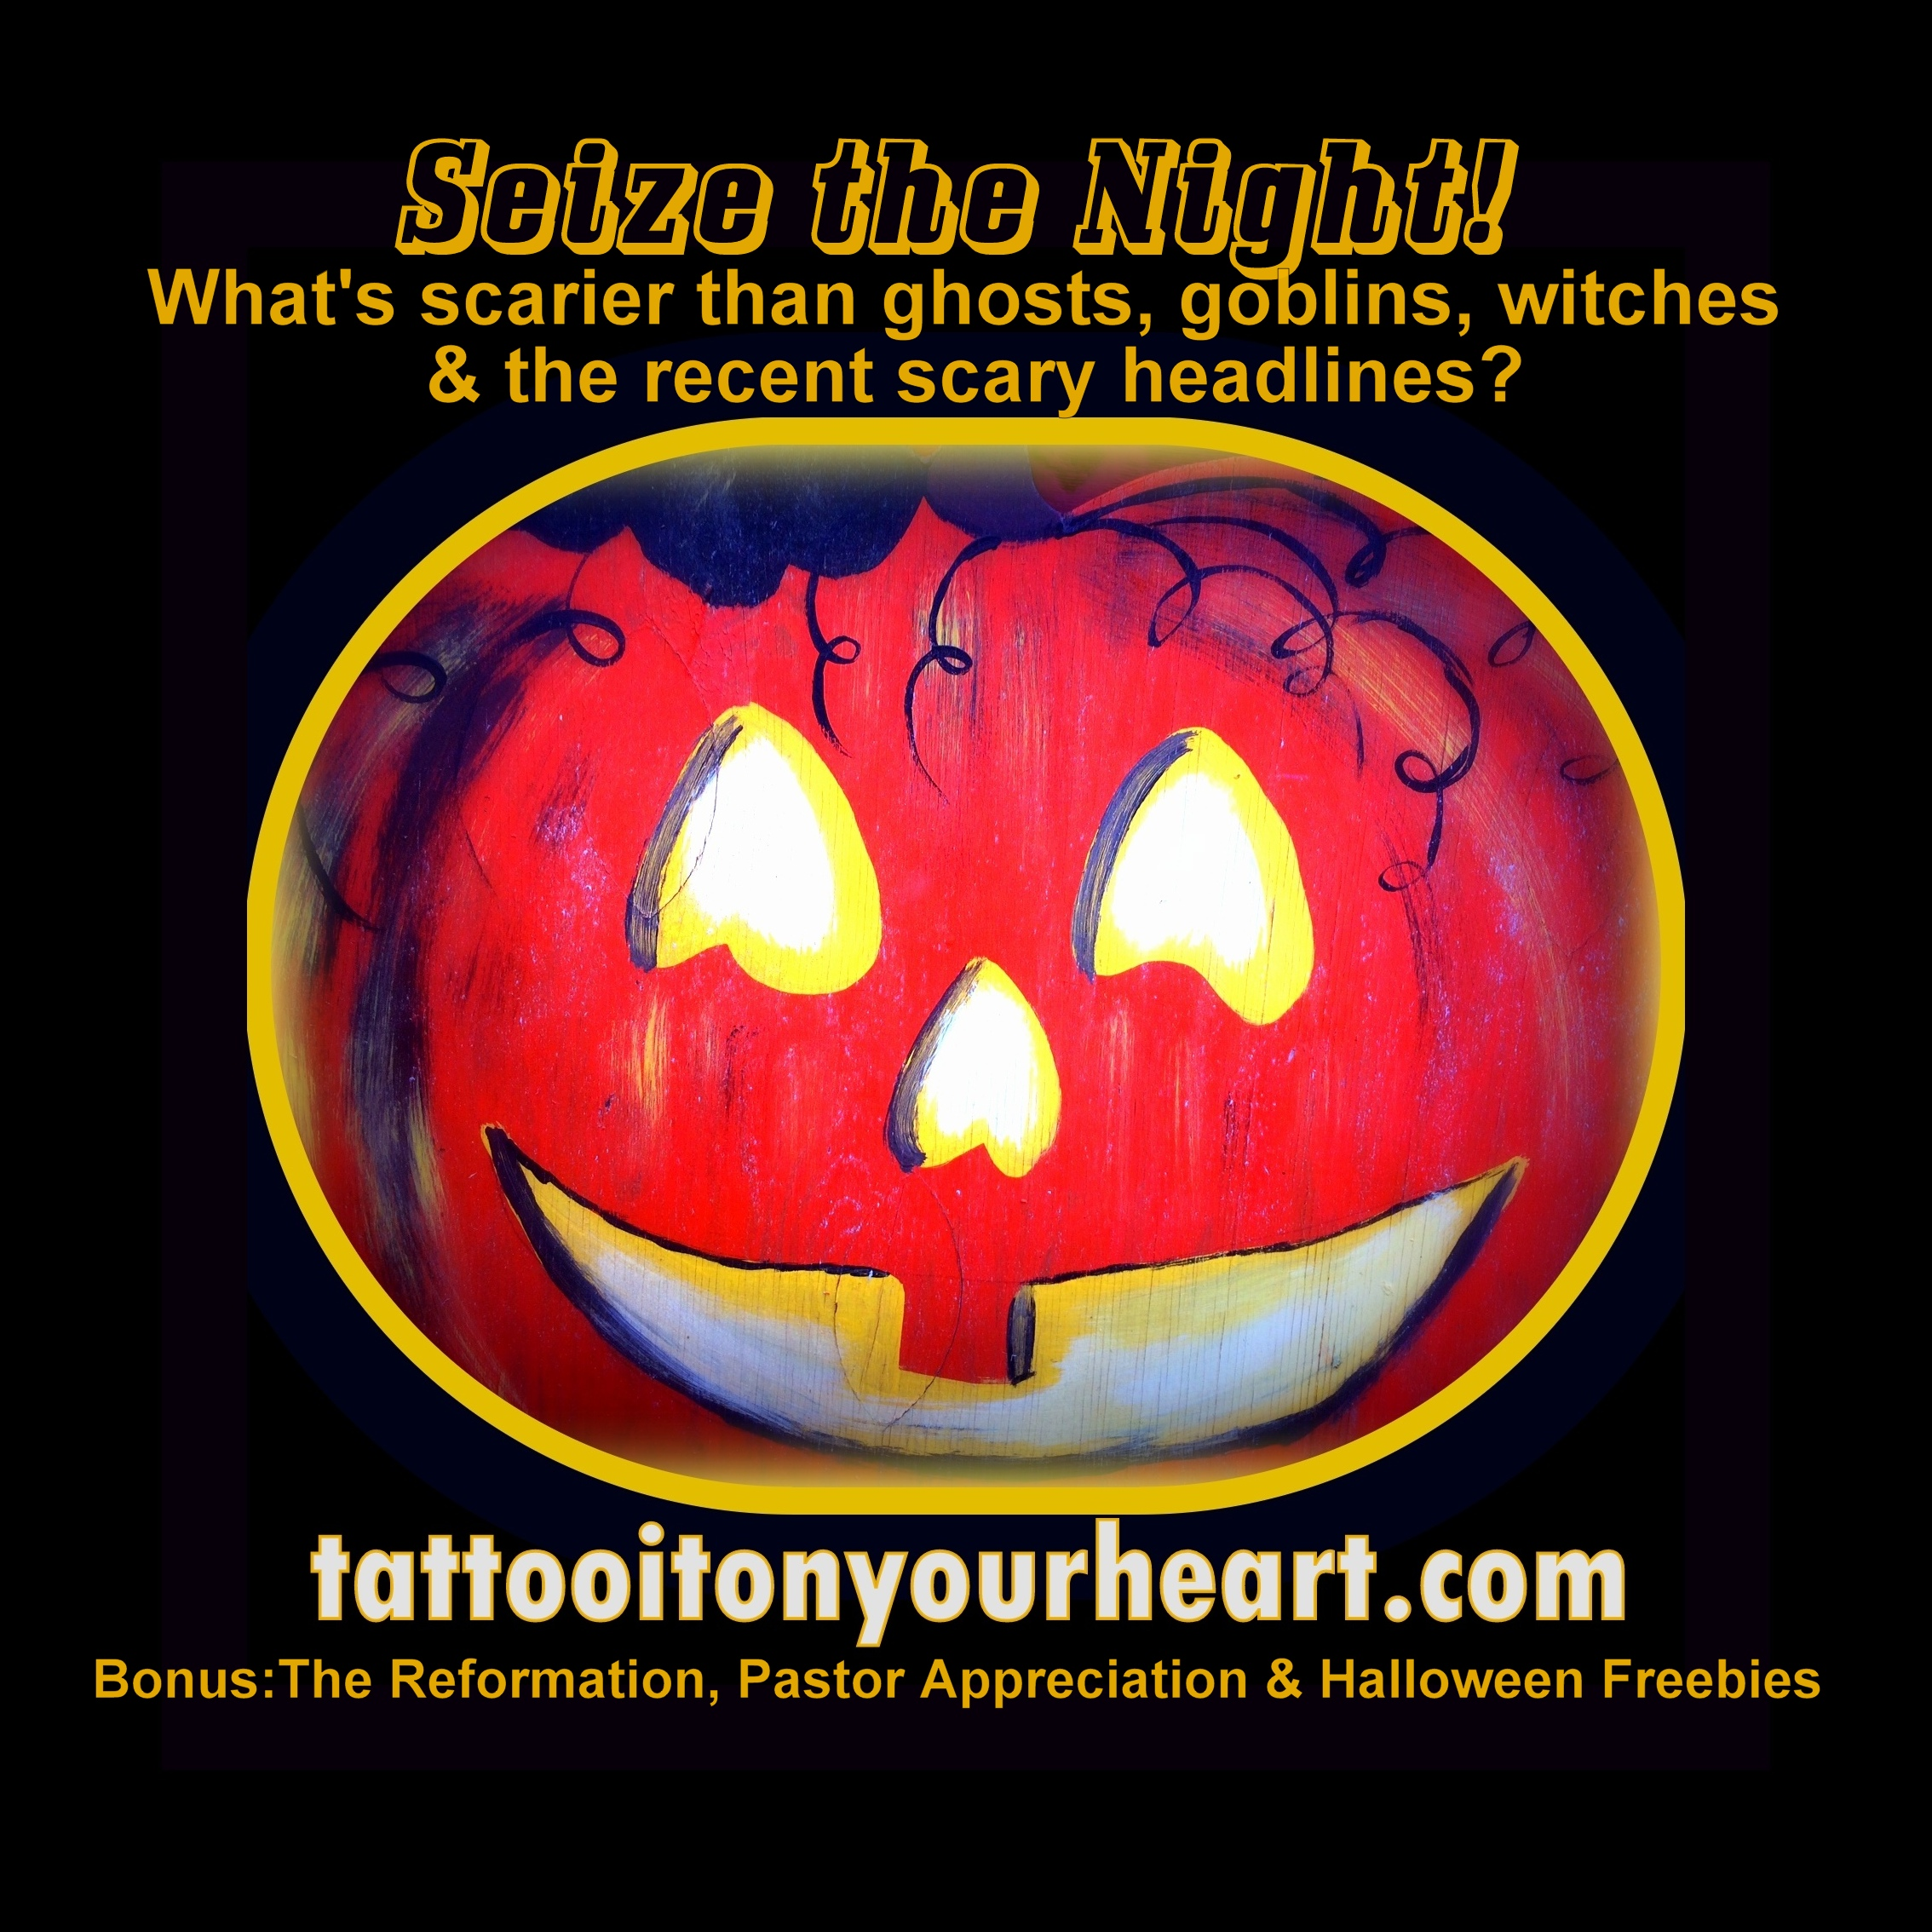 Tattoo_it_On_Your-Heart_Rachael_M_Colby_Seize_The_Night_The-Reformation_Halloween_Pastor_Appreciation